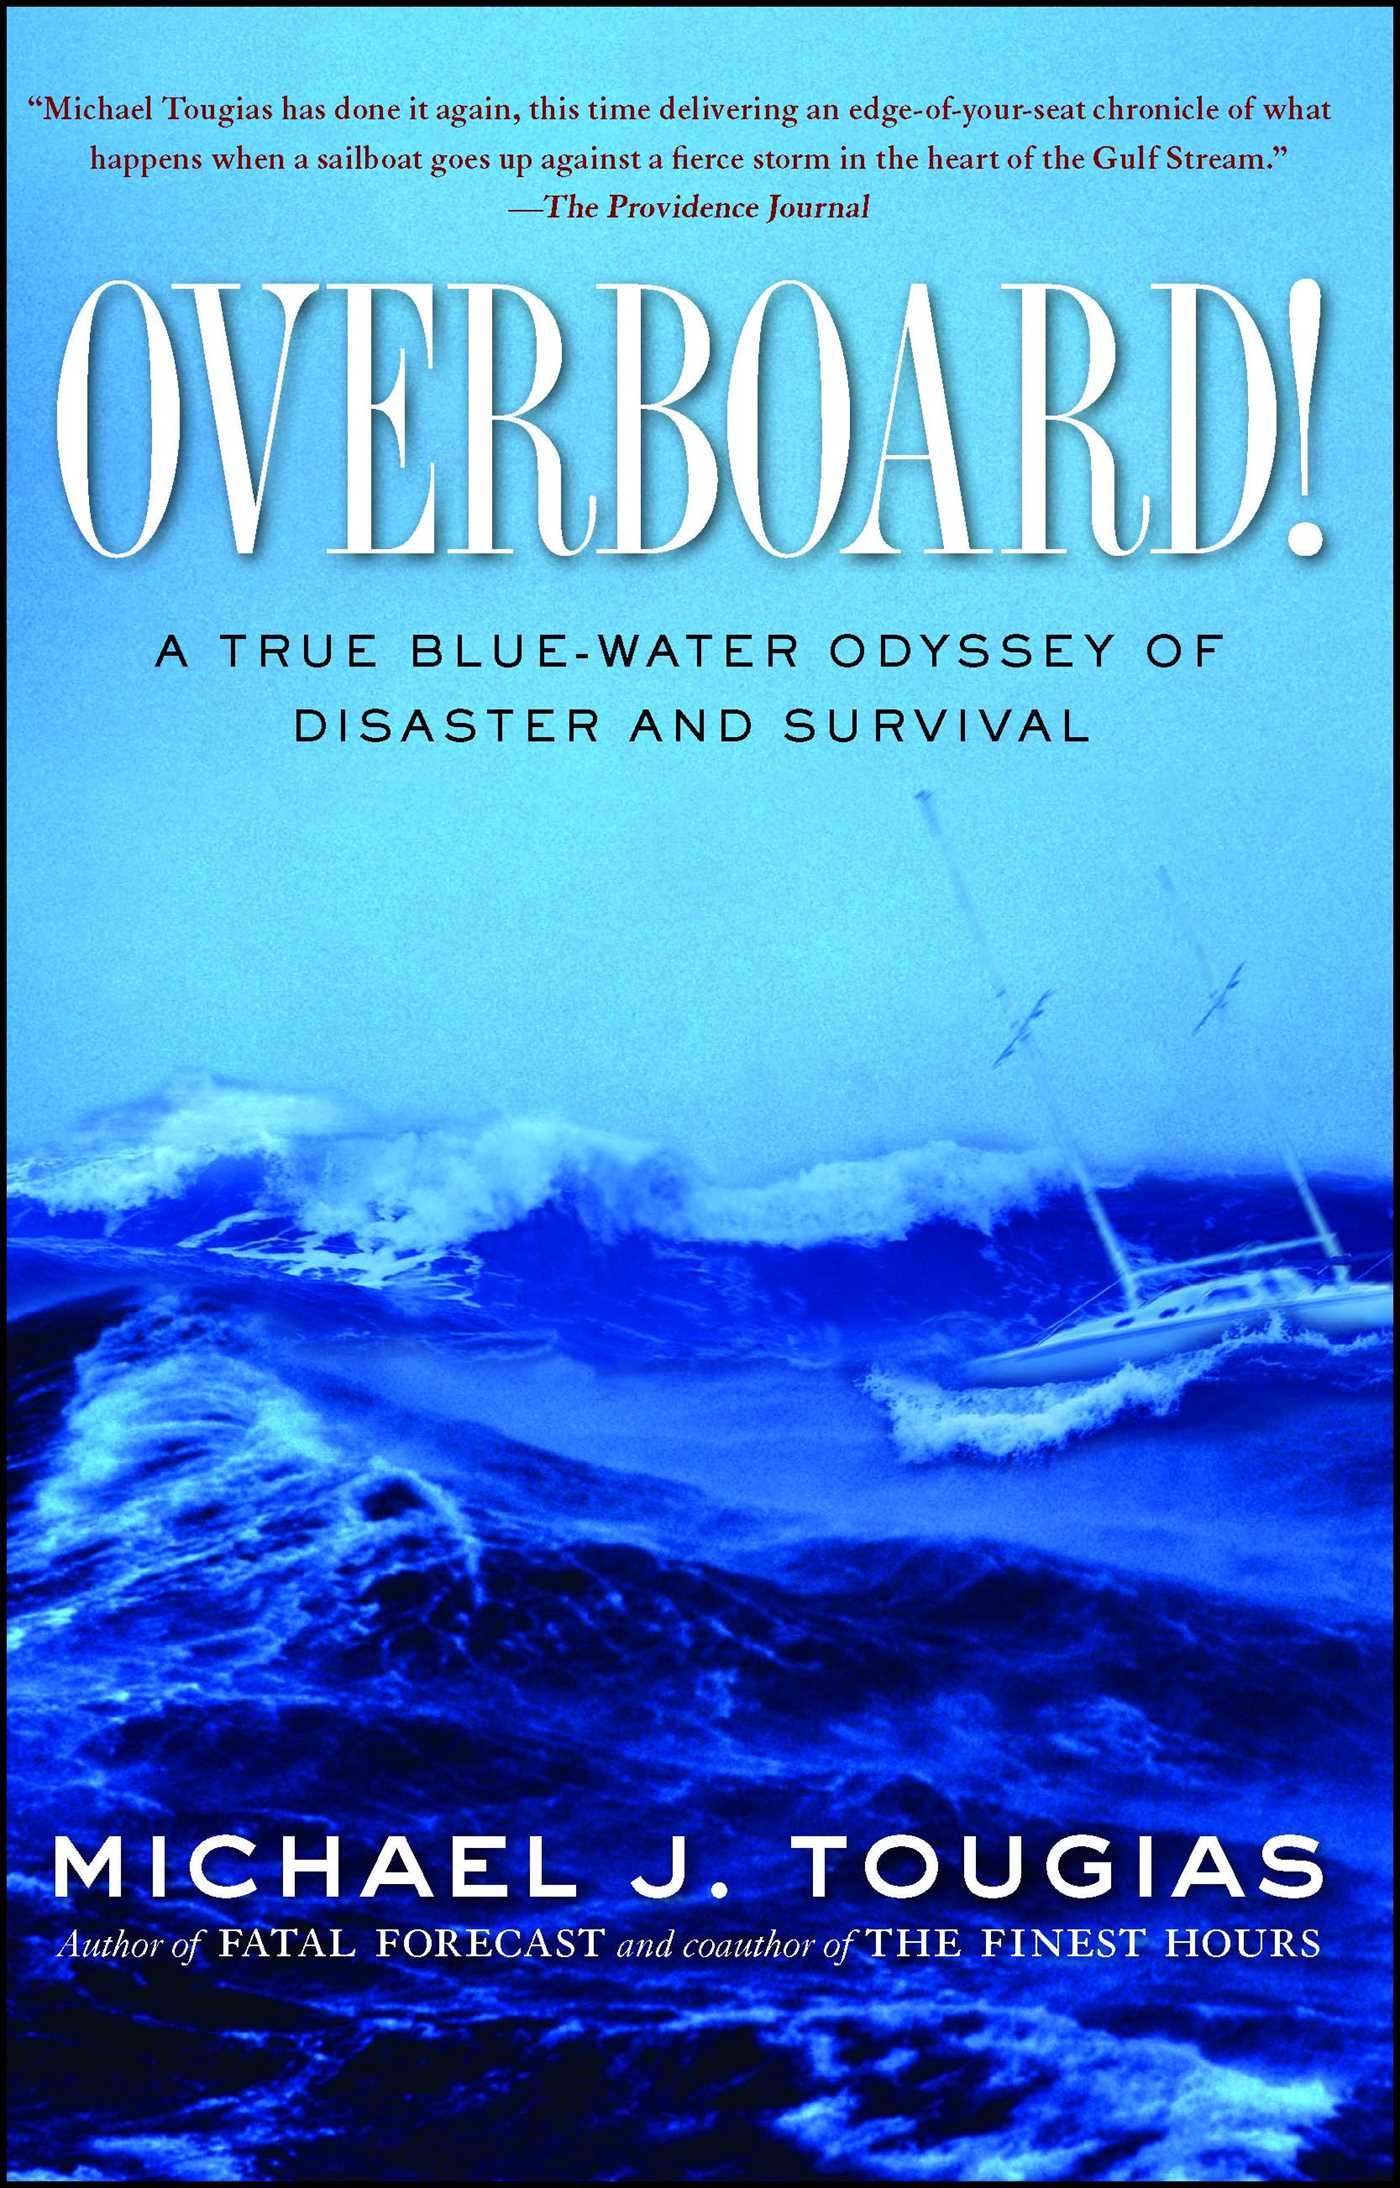 Overboard! | Book by Michael J. Tougias | Official